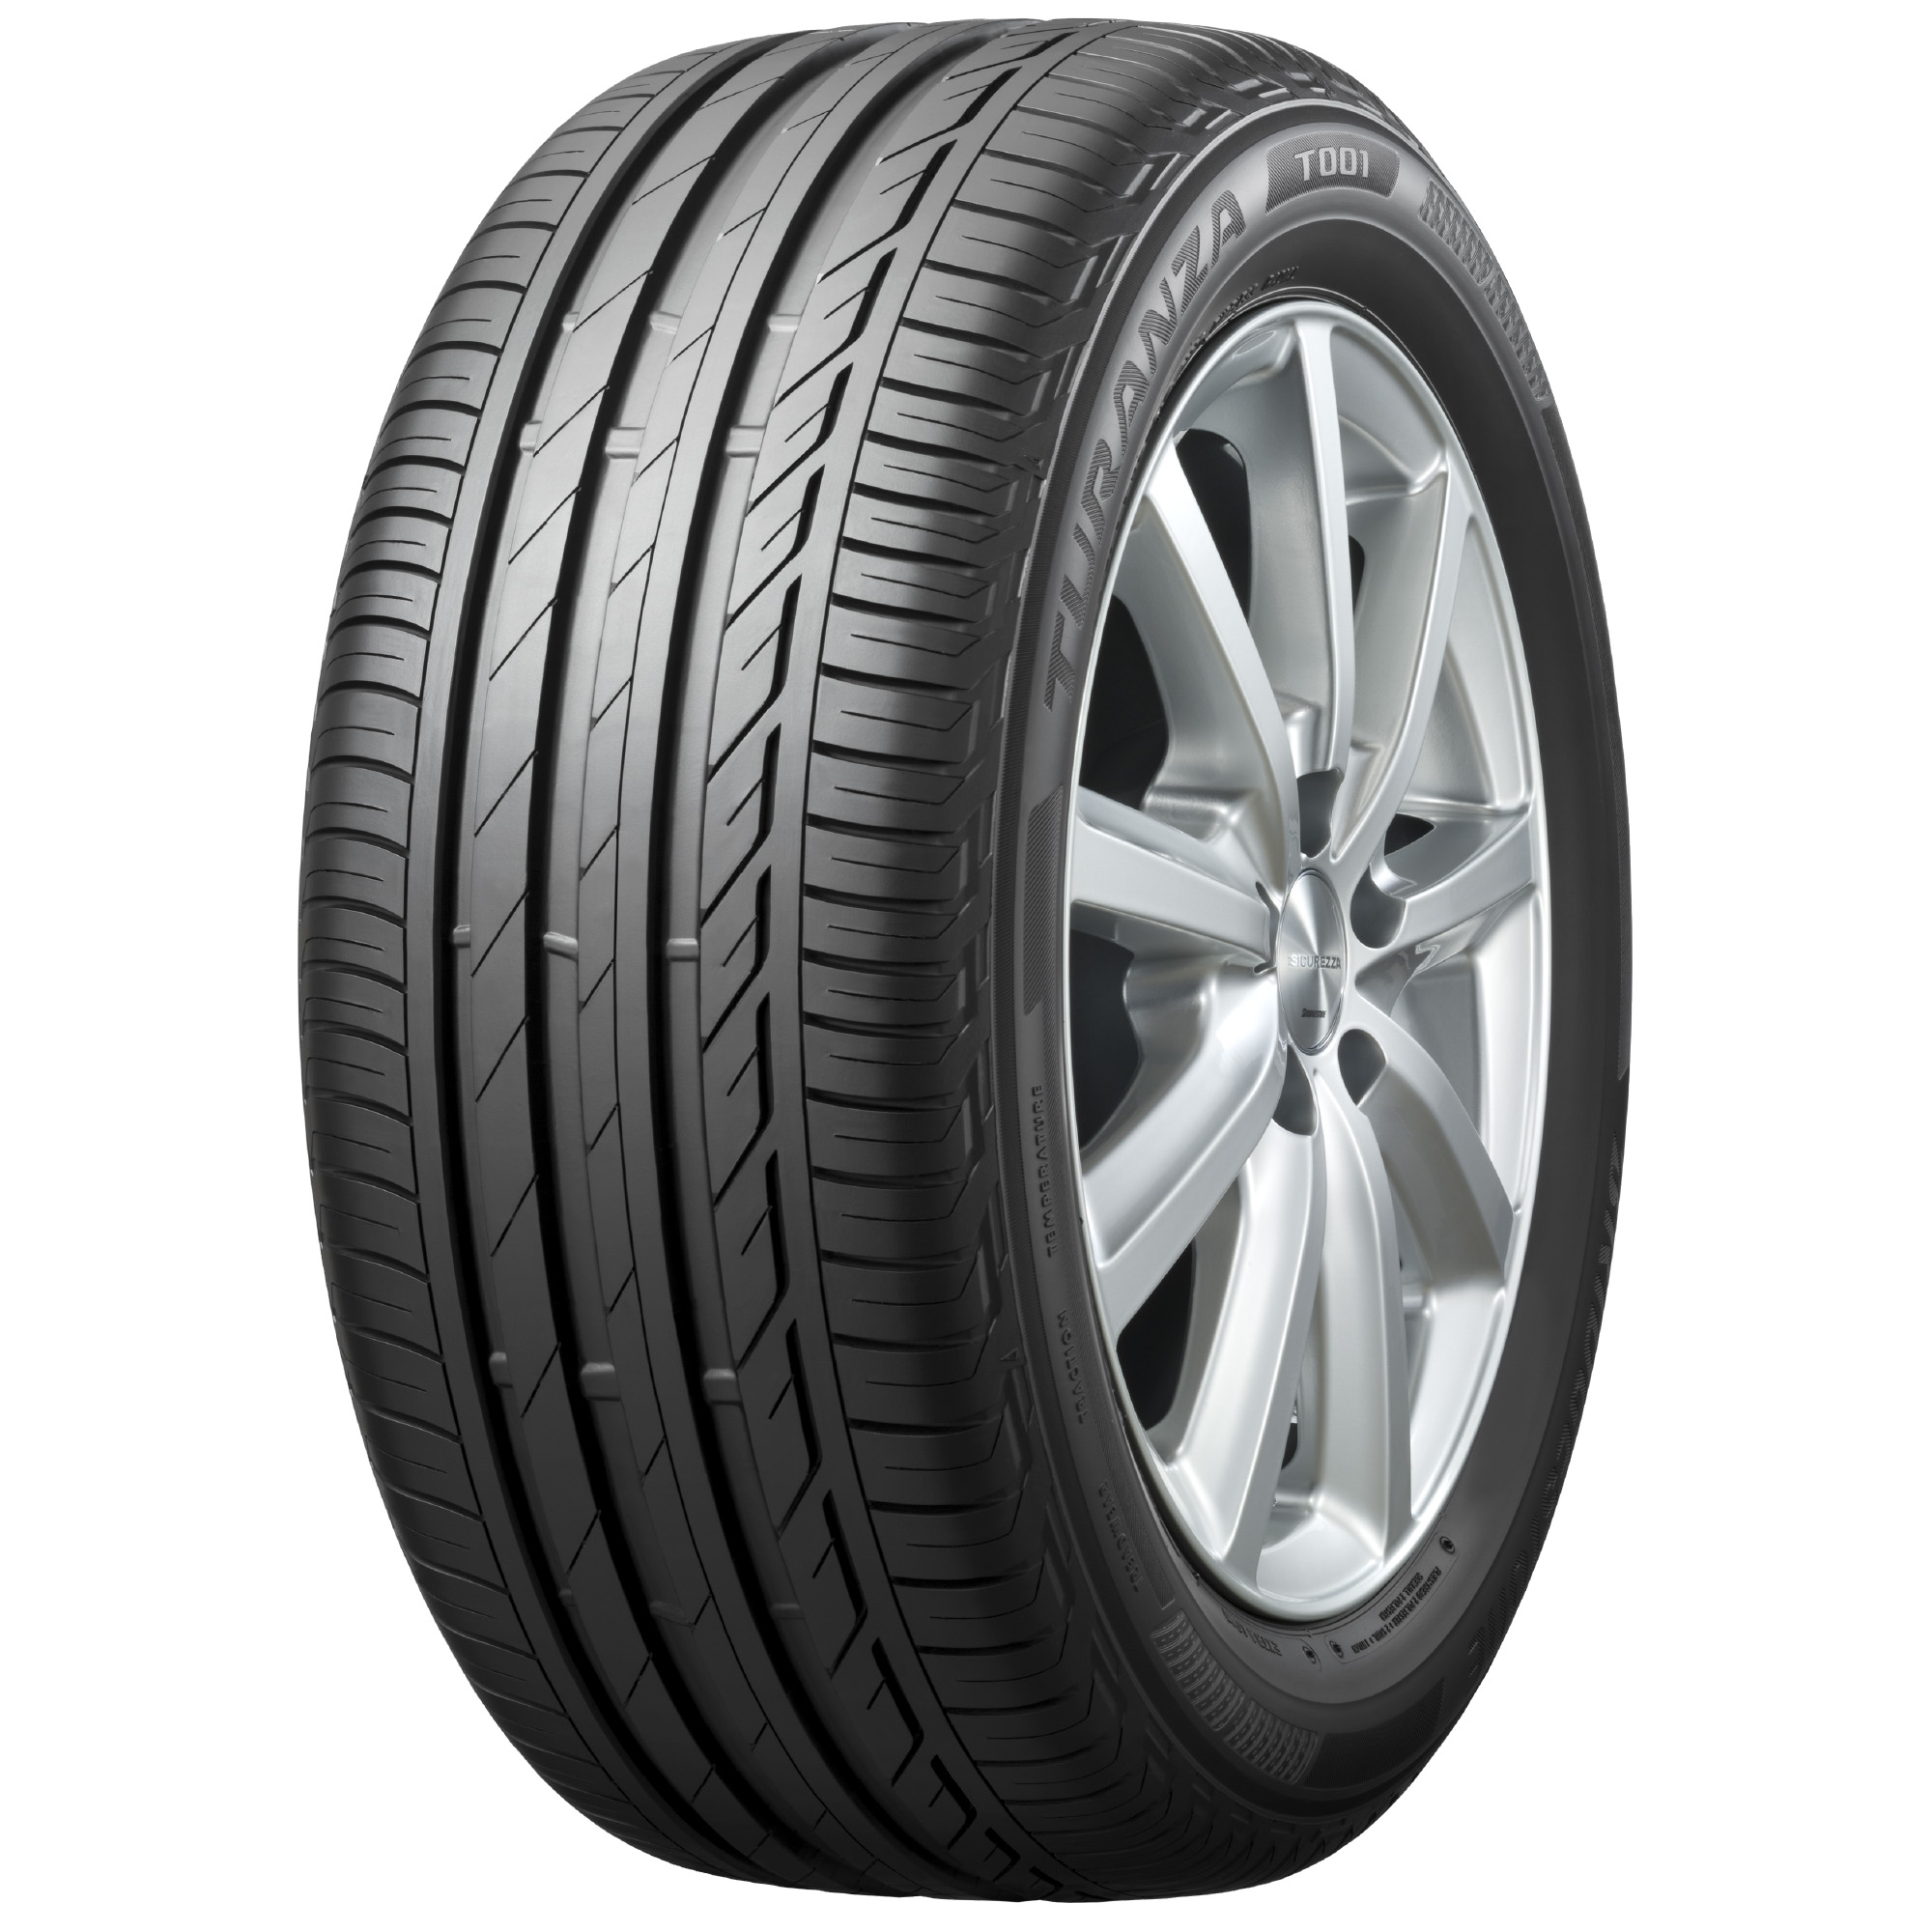 Turanza T001 Tyre